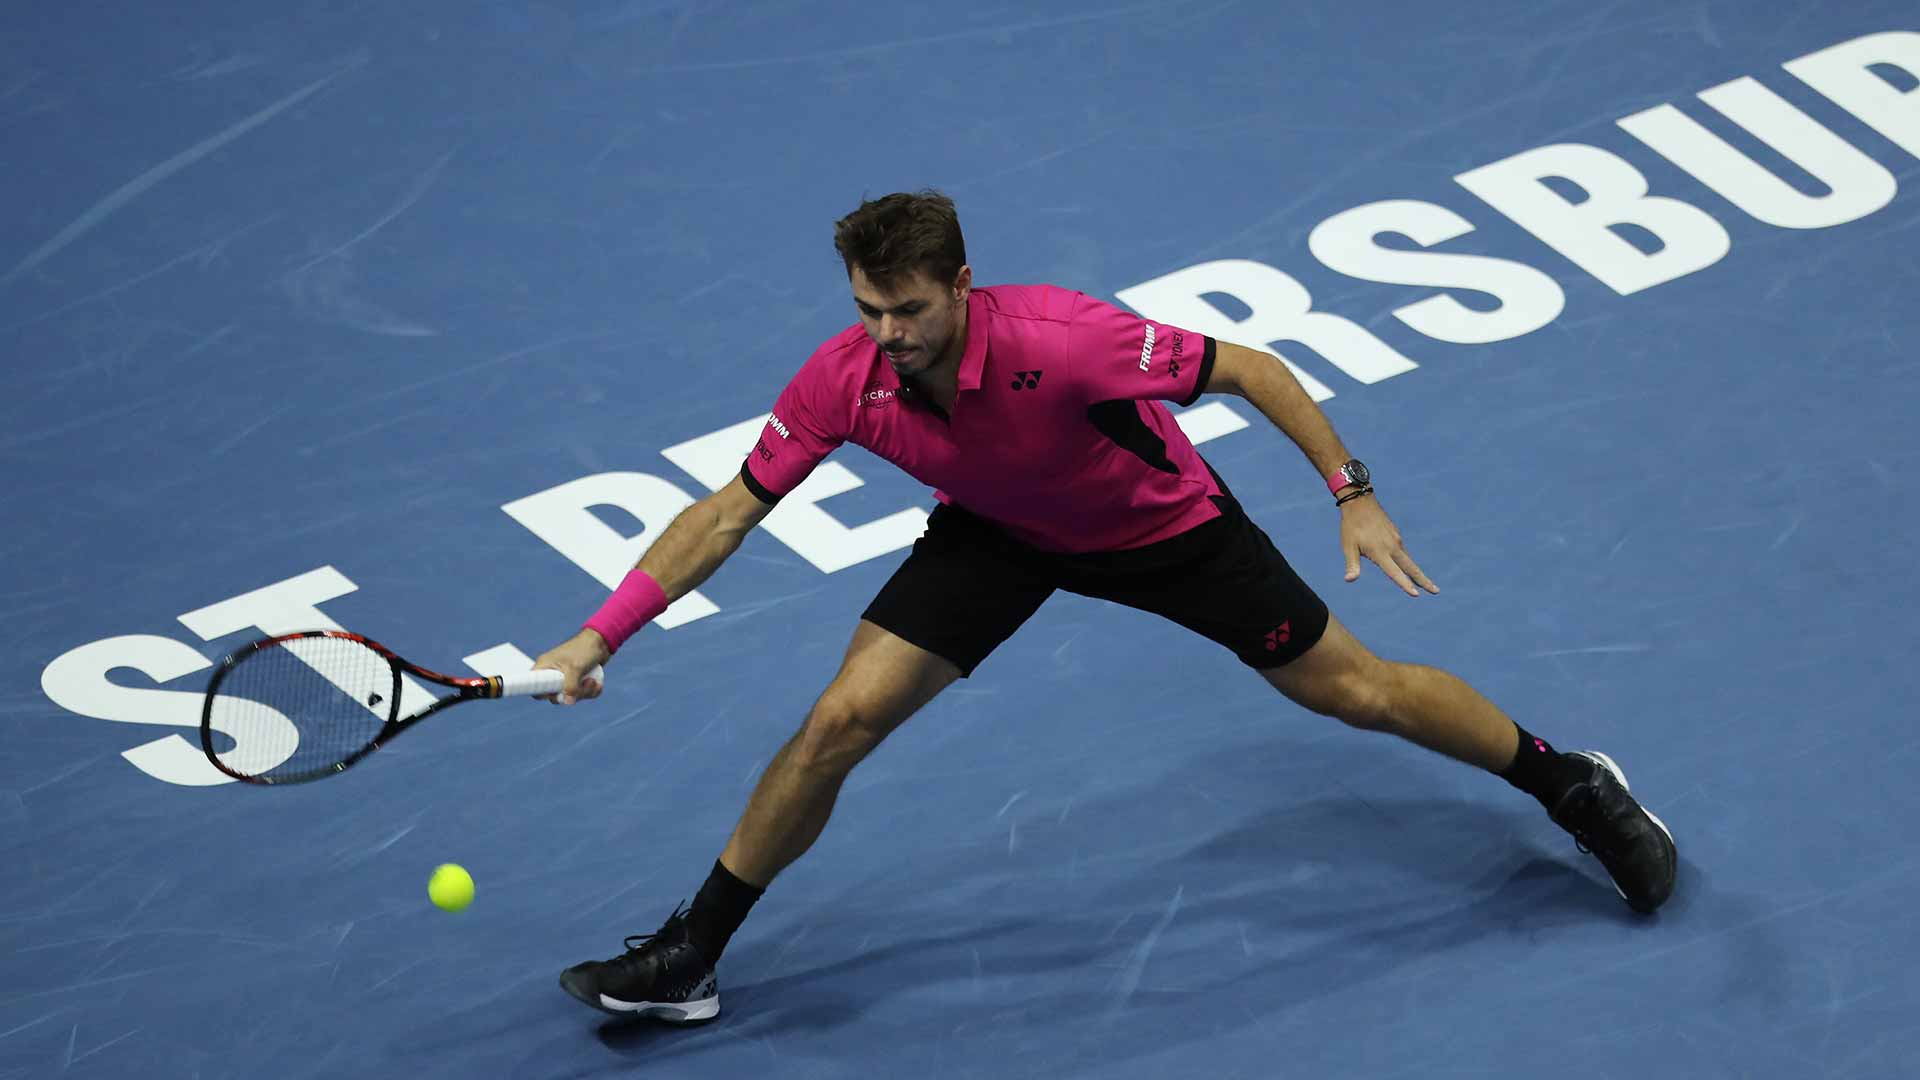 Stan Wawrinka moves into the quarter-finals in St. Petersburg.